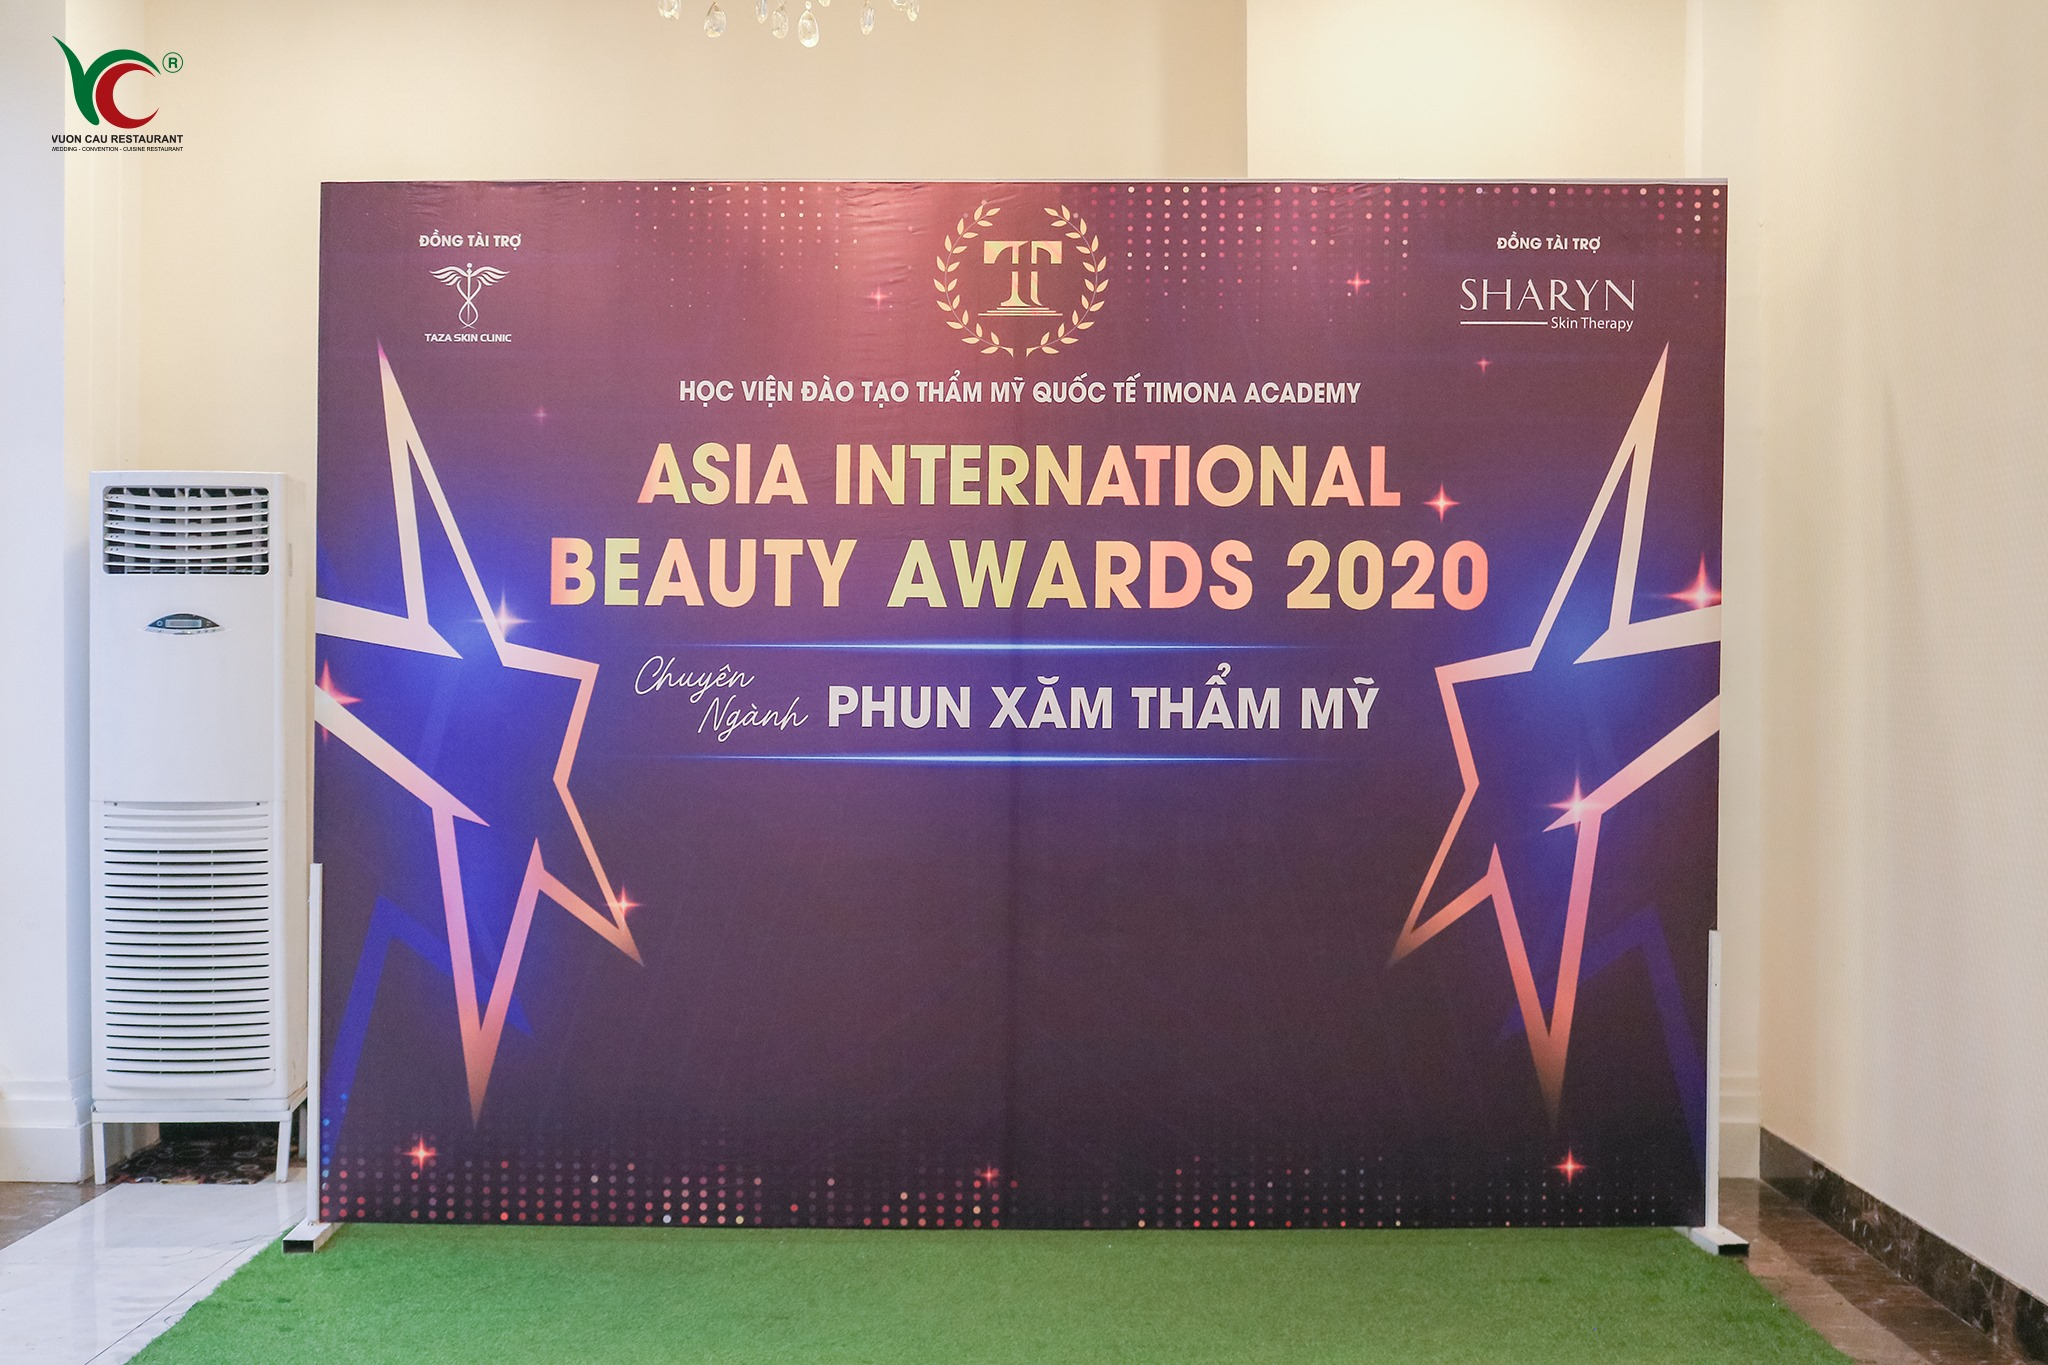 ASIAN INTERNATIONAL BEAUTY AWARDS 2020